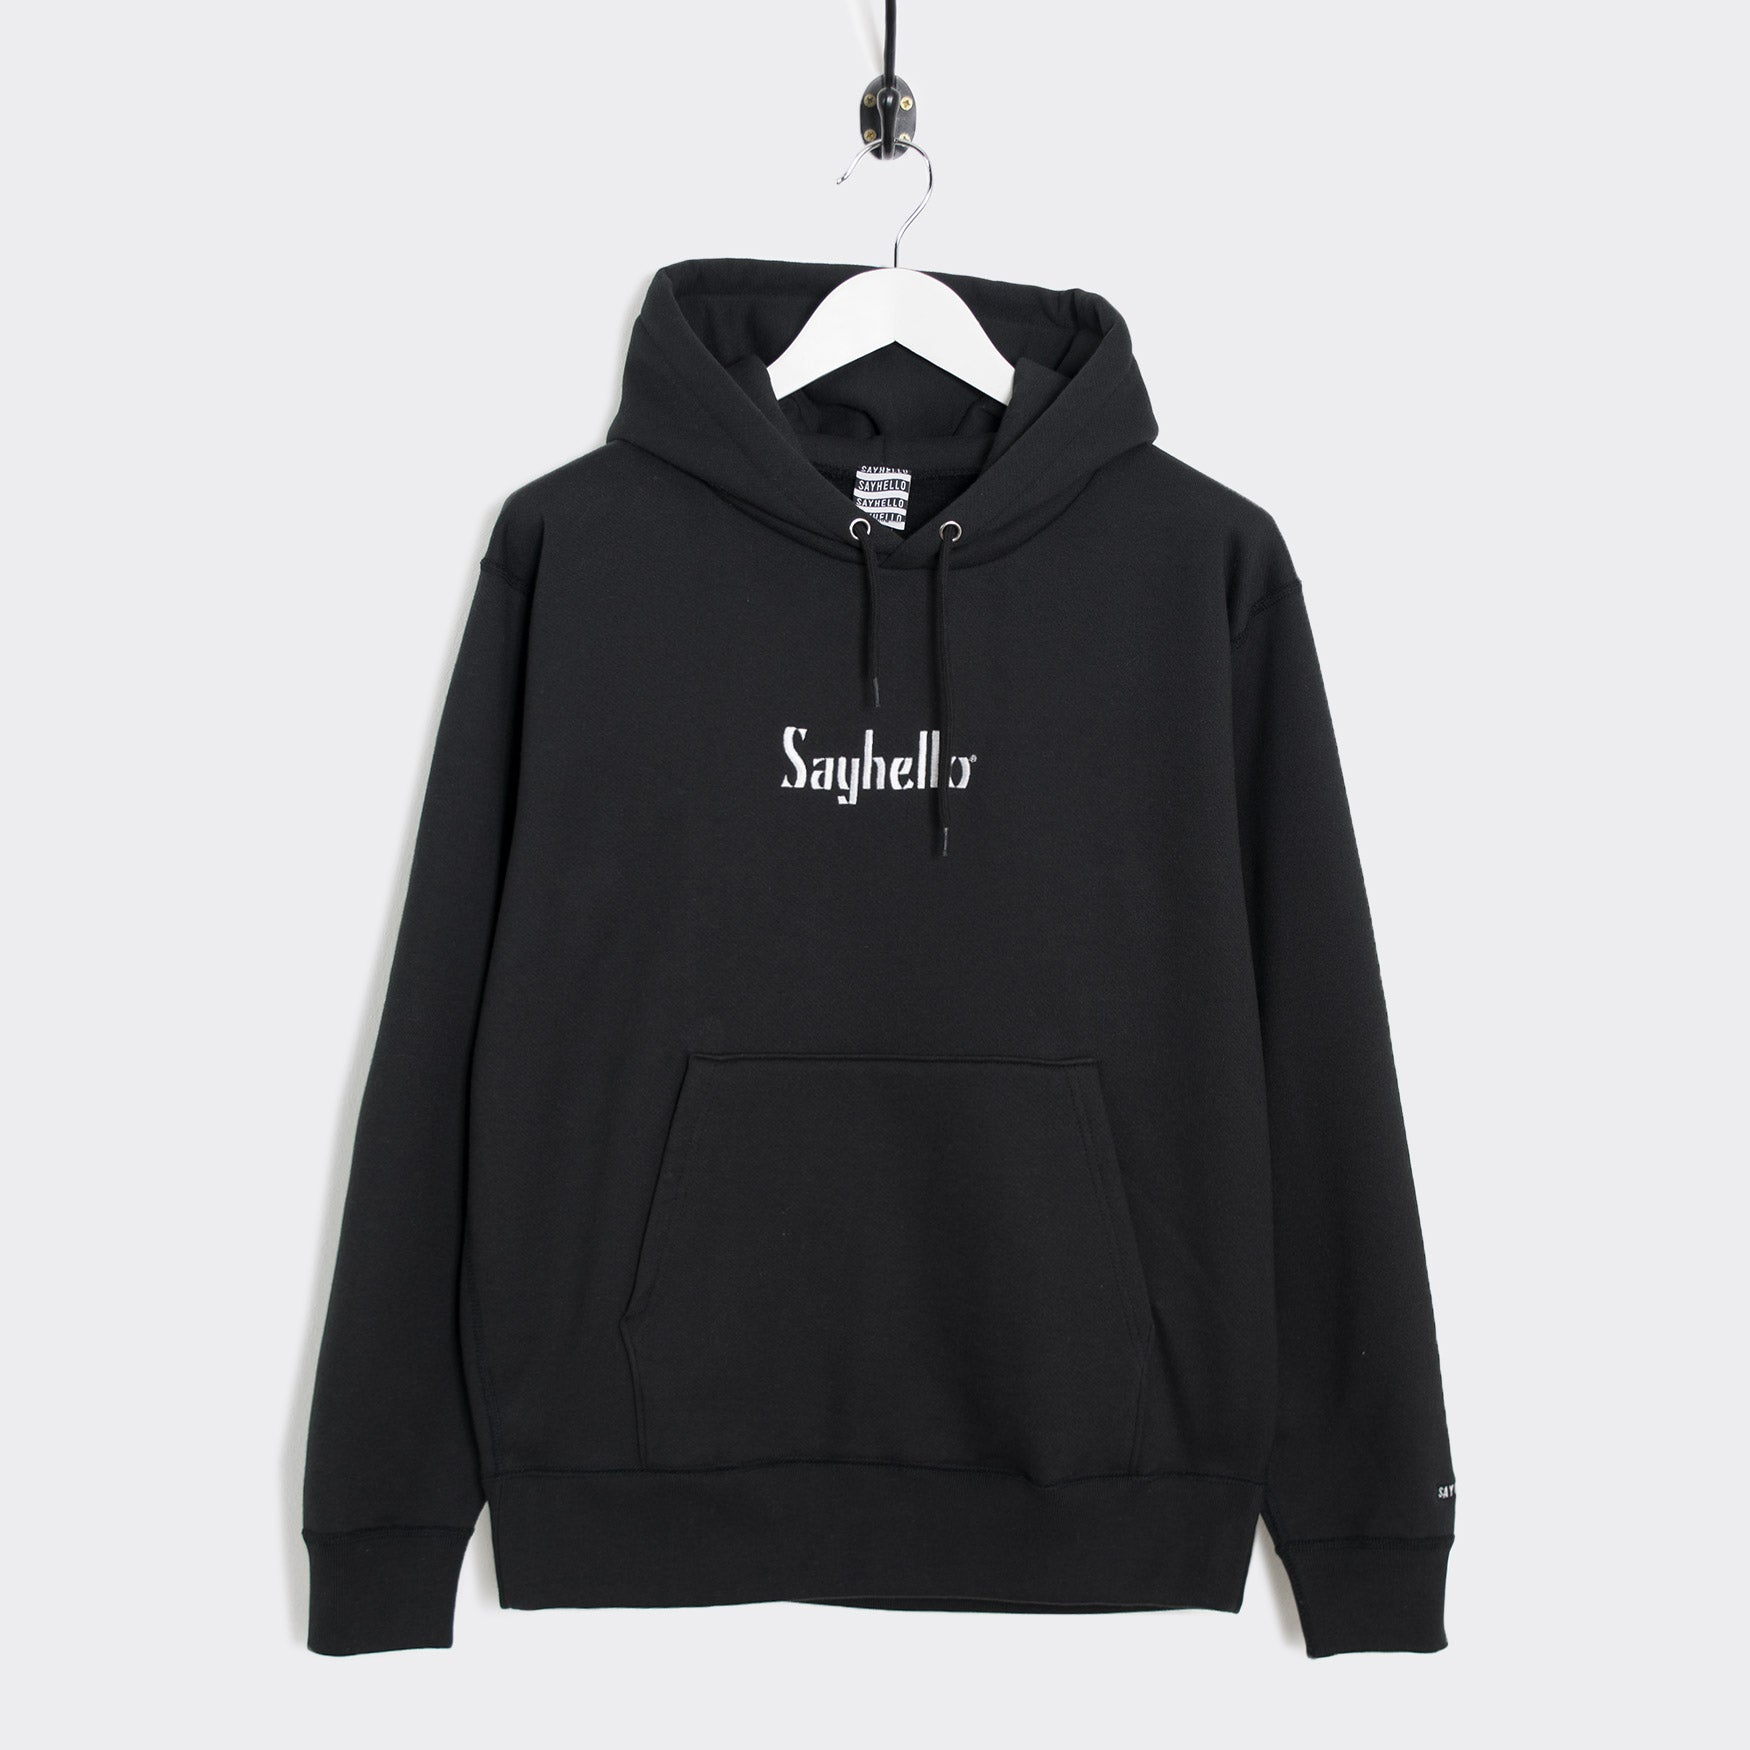 Sayhello Classic Logo Hooded Sweatshirt - Black Hoody - CARTOCON